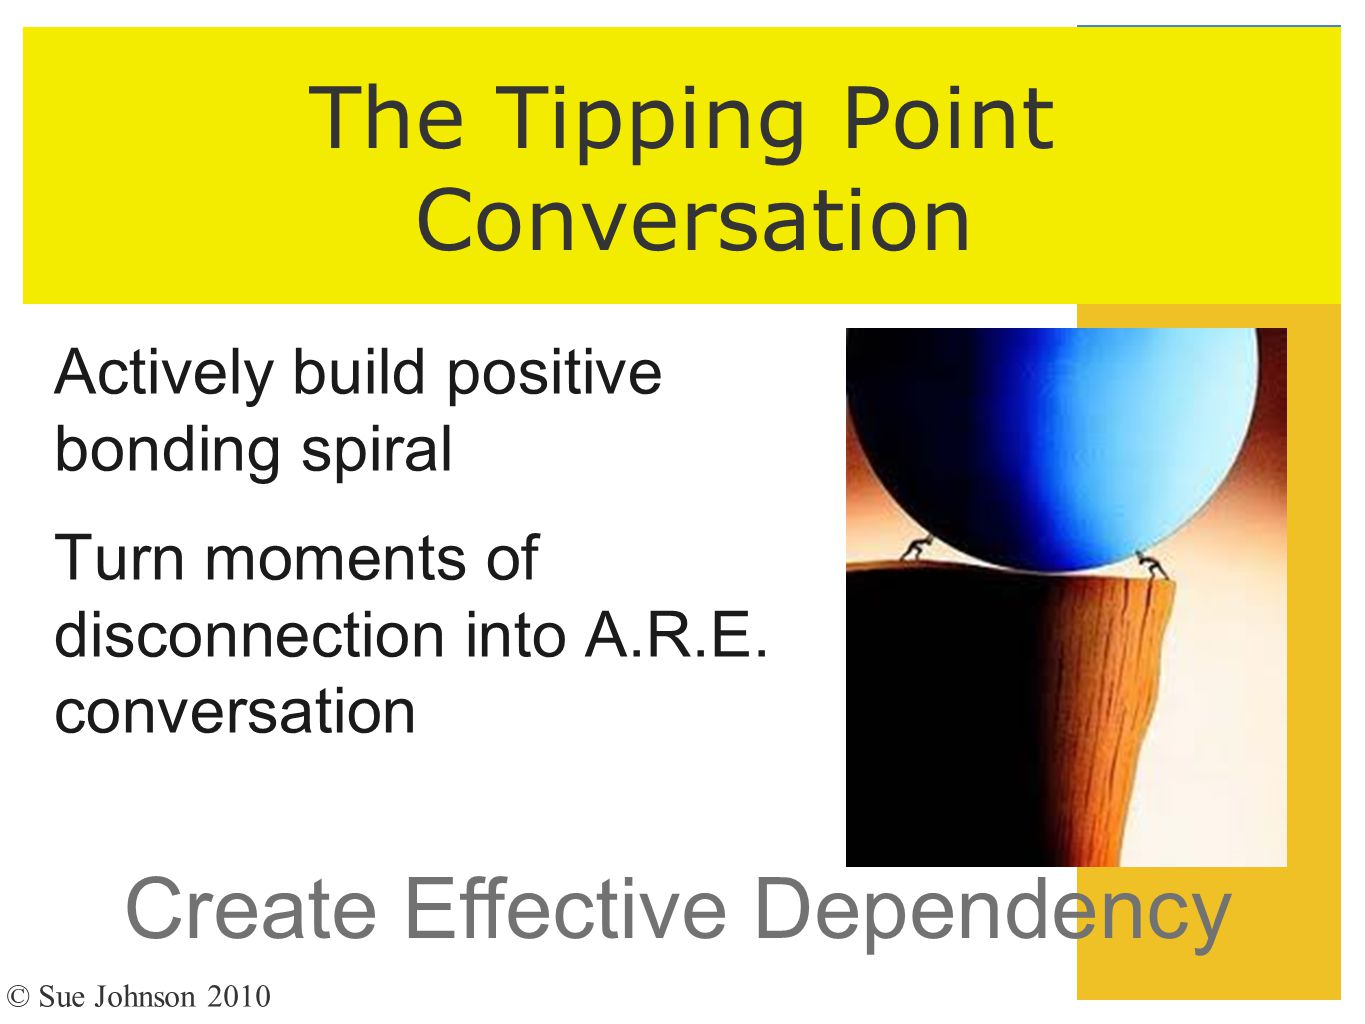 The Tipping Point Conversation